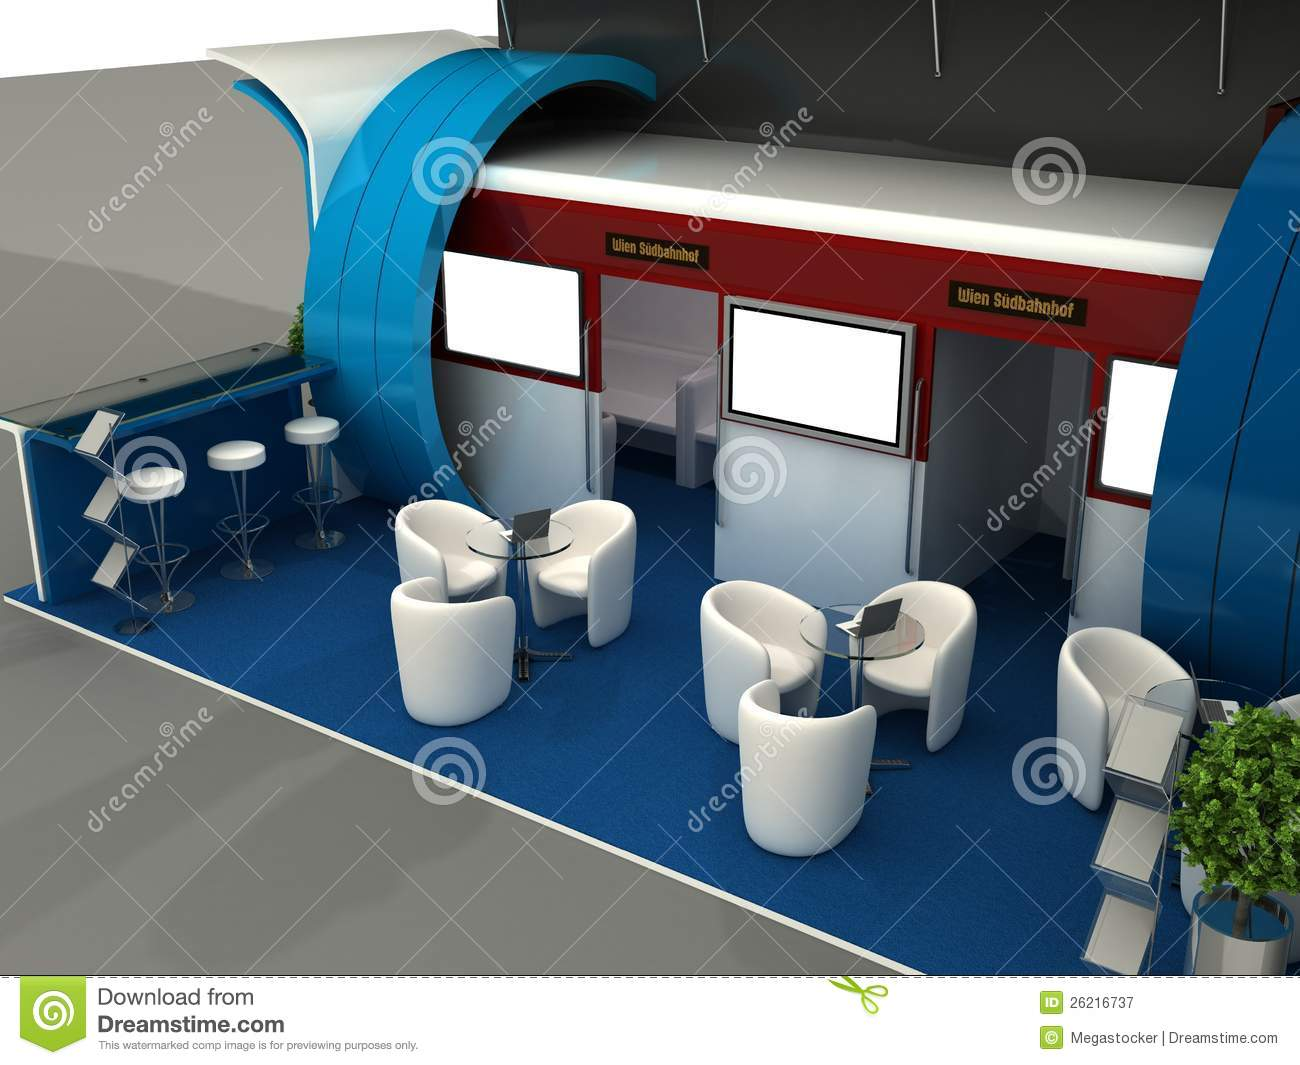 D Exhibition Stand Free Download : Exhibition stand interior sample stock illustration illustration